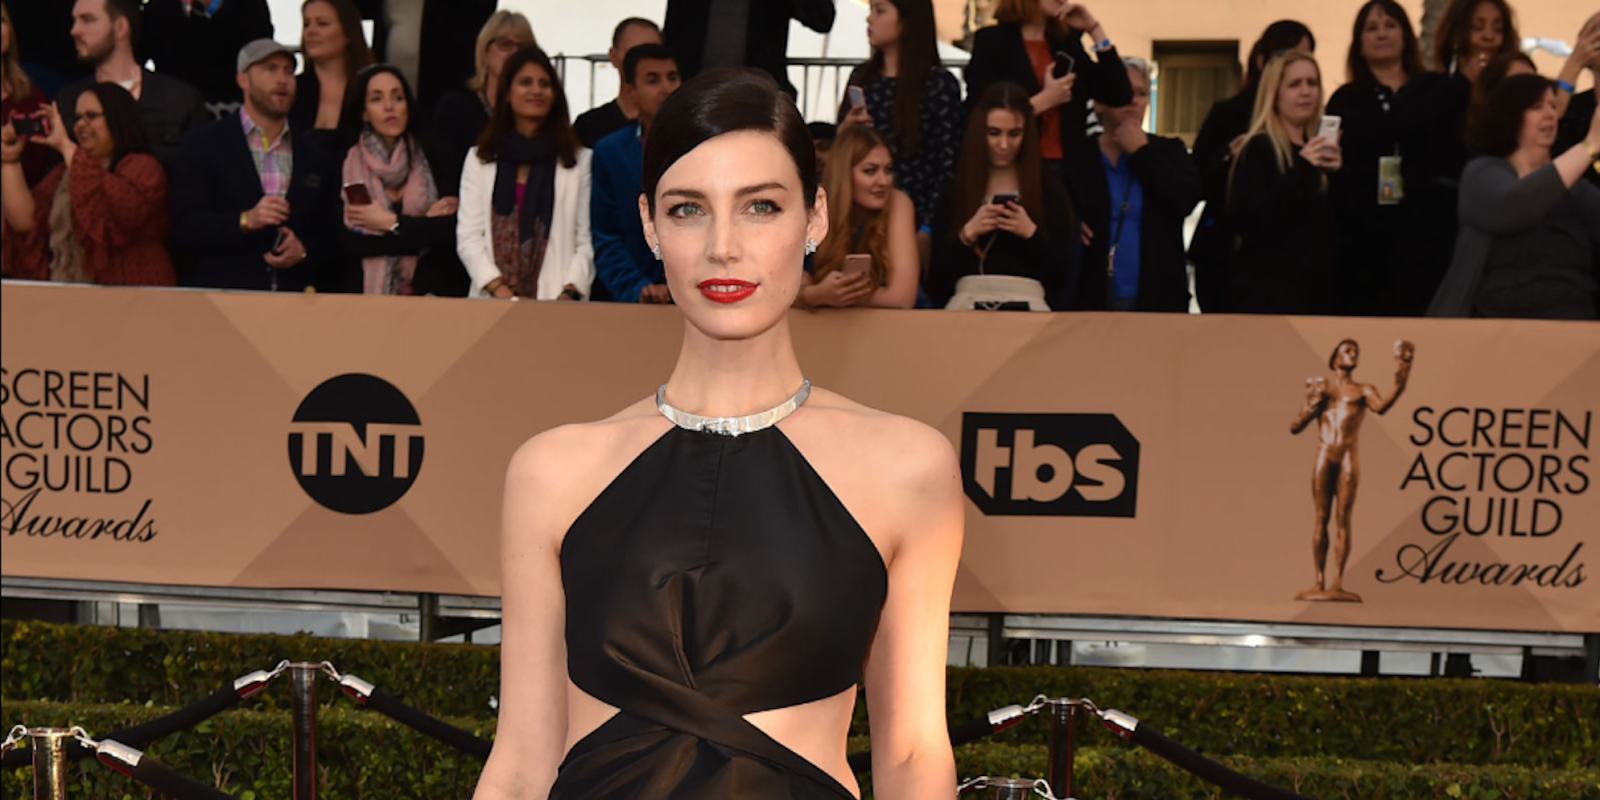 The Hottest Looks of the 2016 Screen Actors Guild Awards